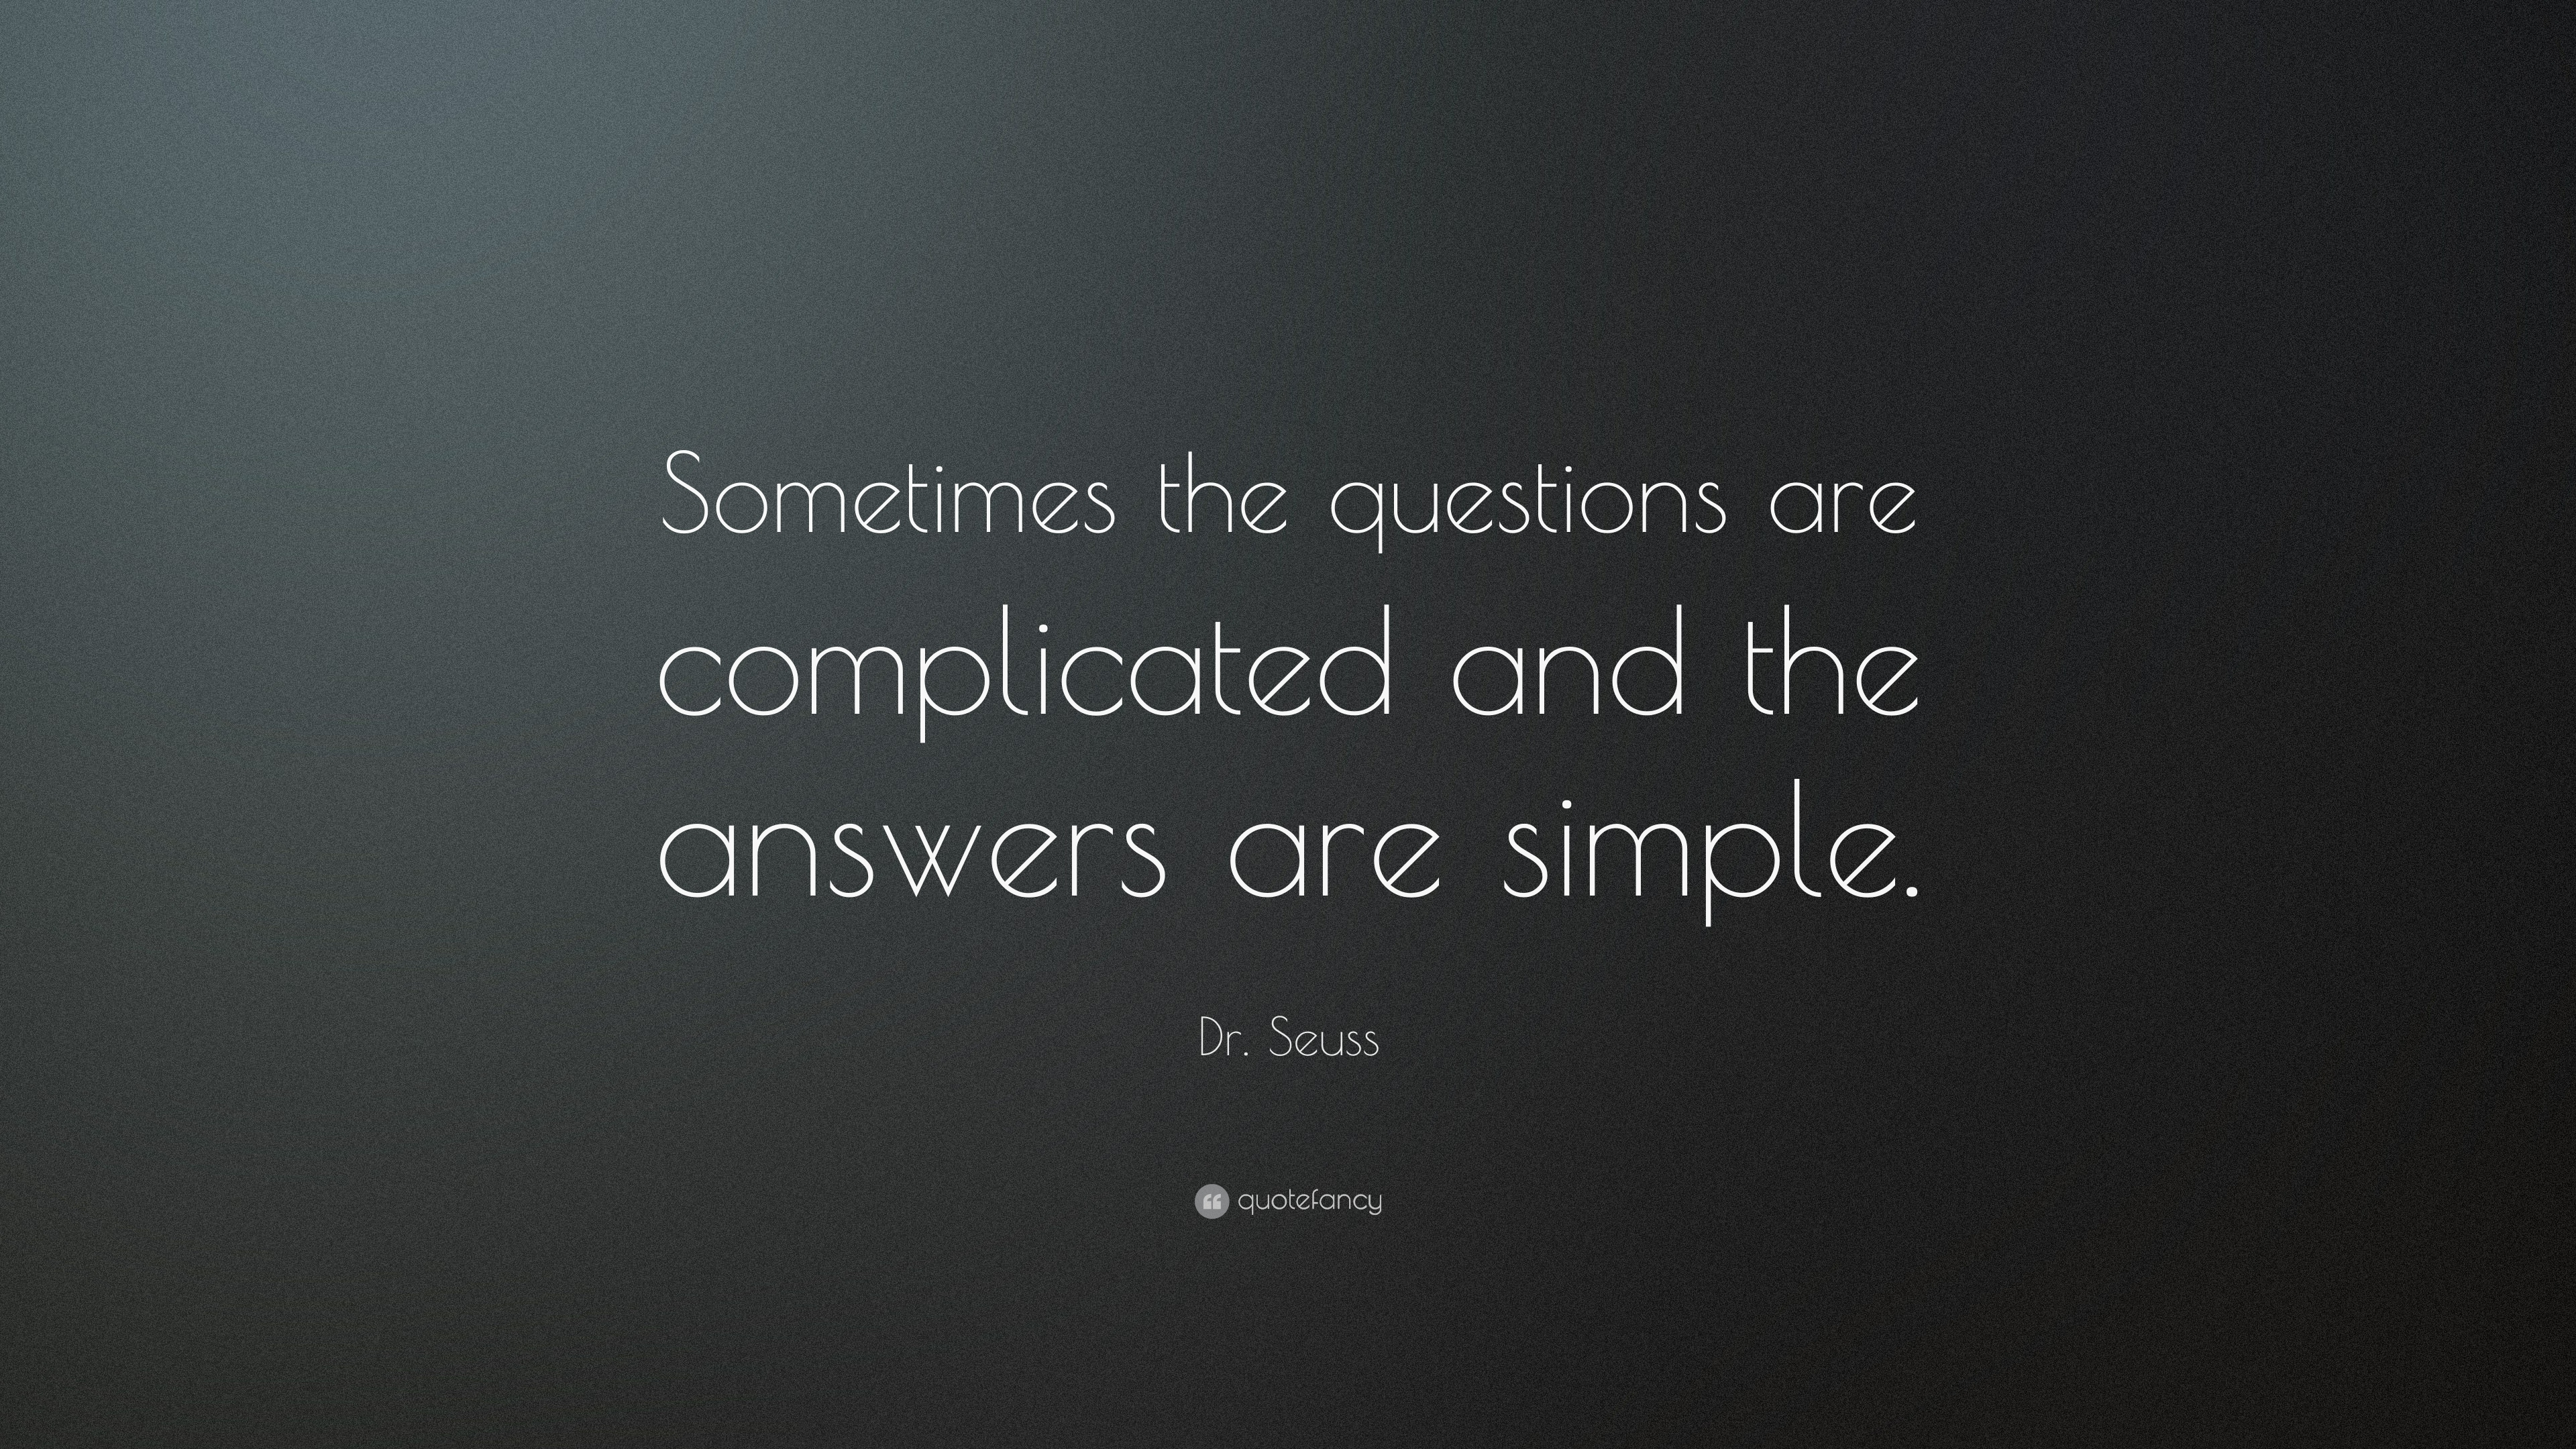 Image result for Sometimes the questions are complicated and the answers are simple.